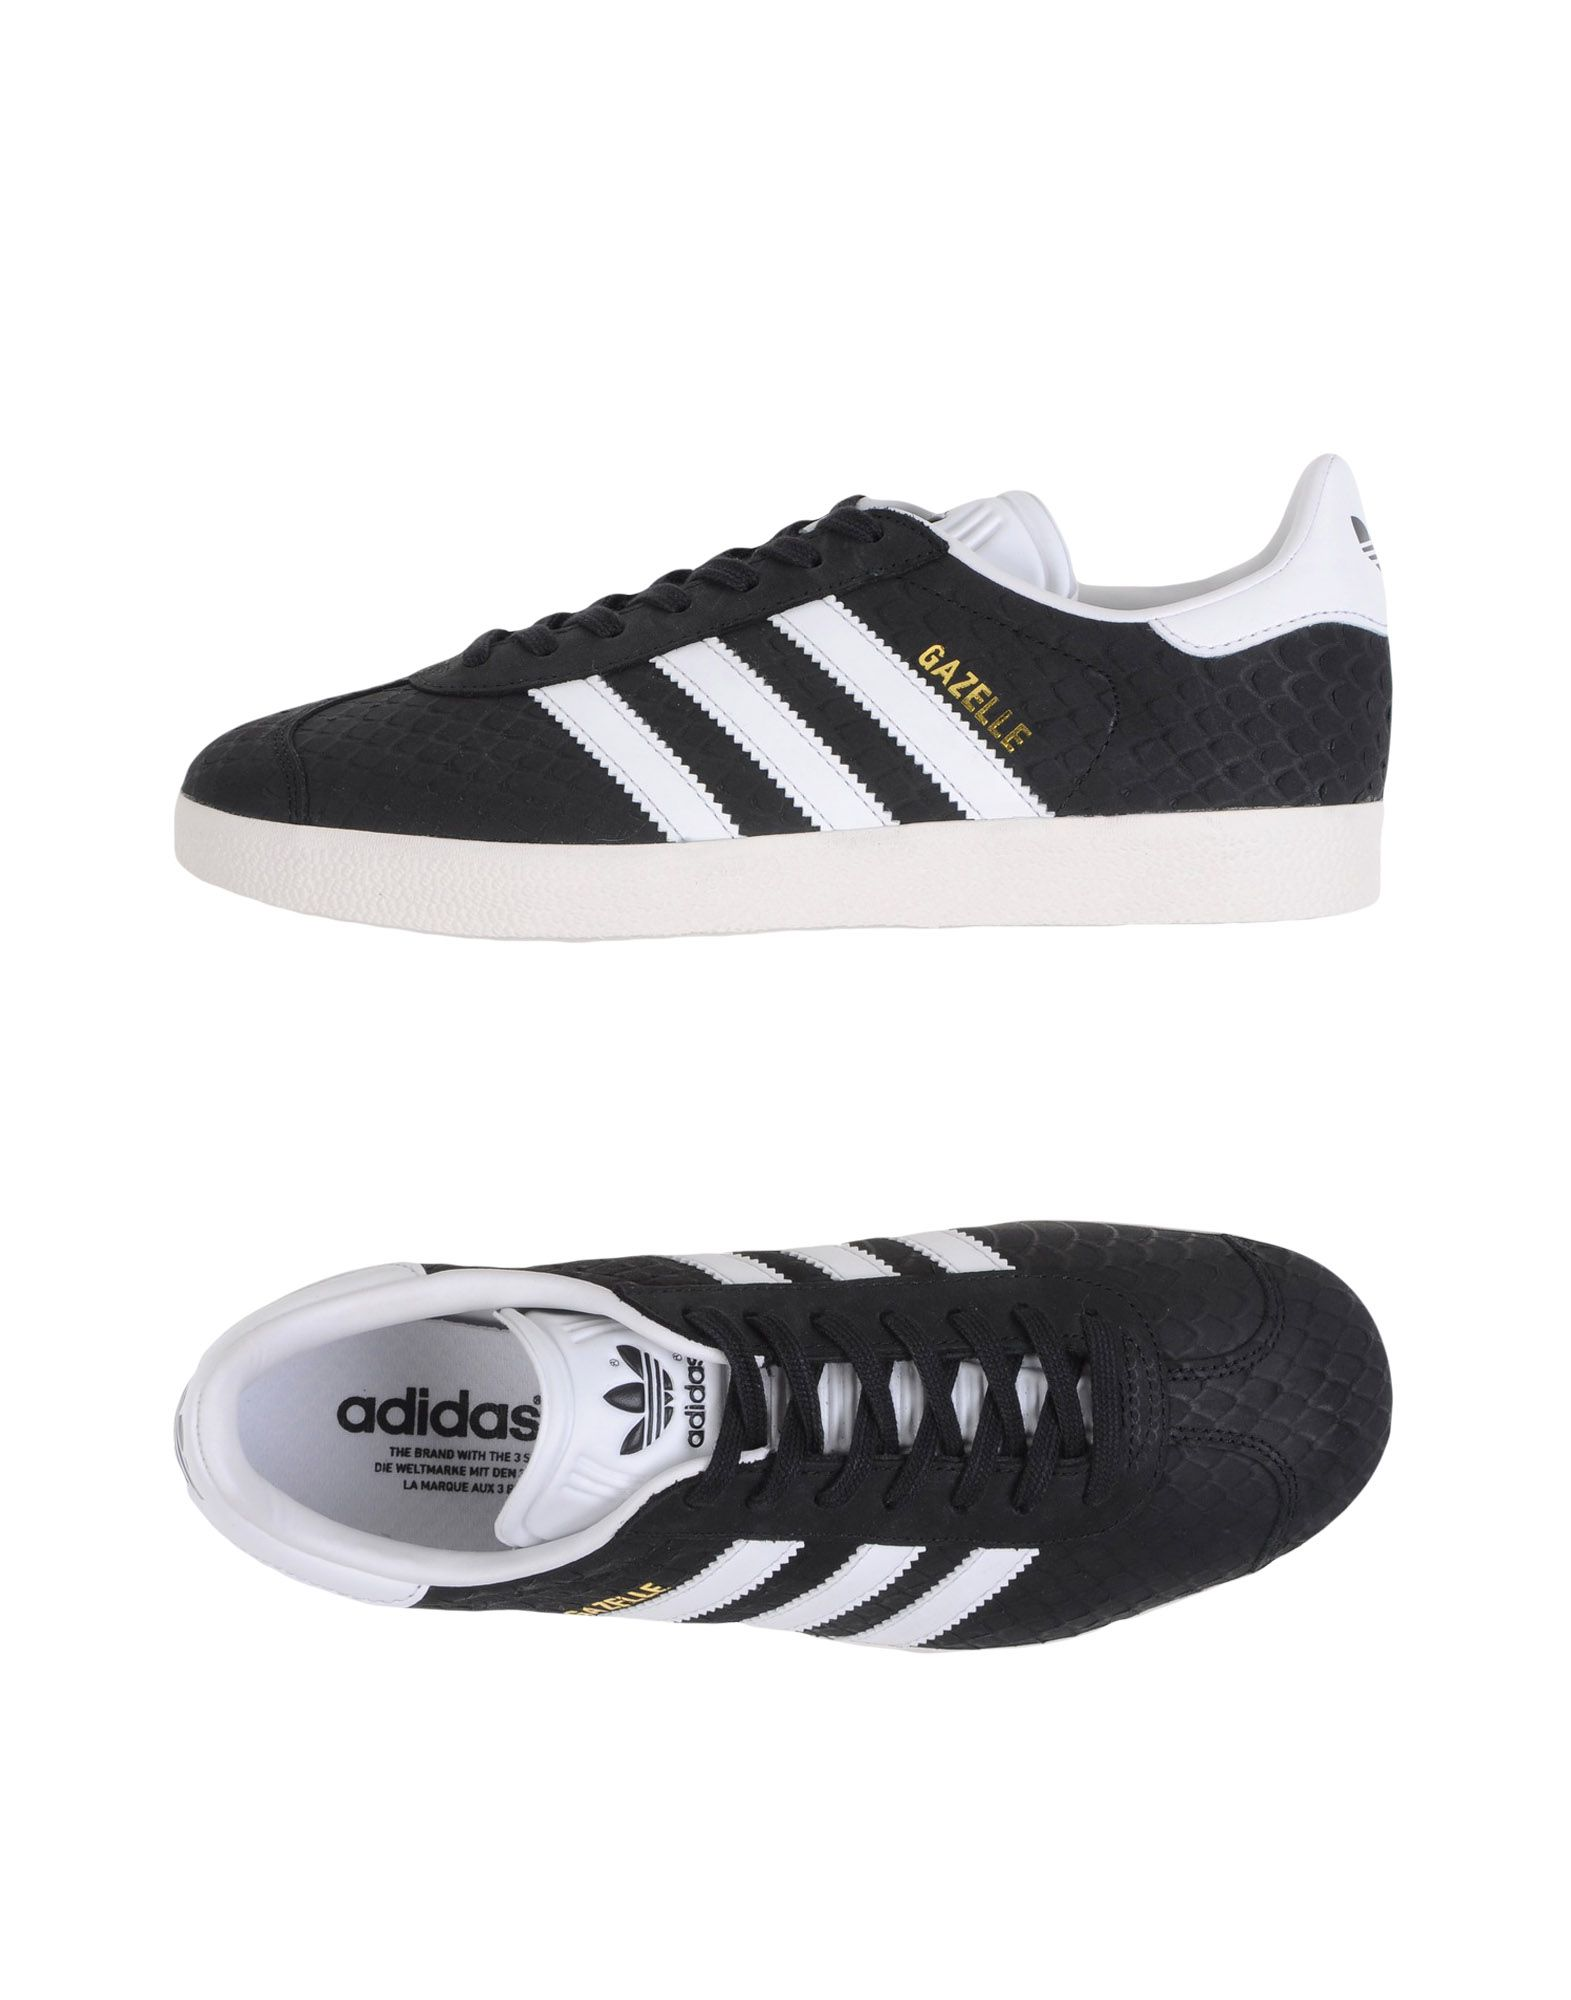 uk availability a54b3 cb629 Adidas Originals Women Spring-Summer and Fall-Winter Collections - Shop  online at YOOX